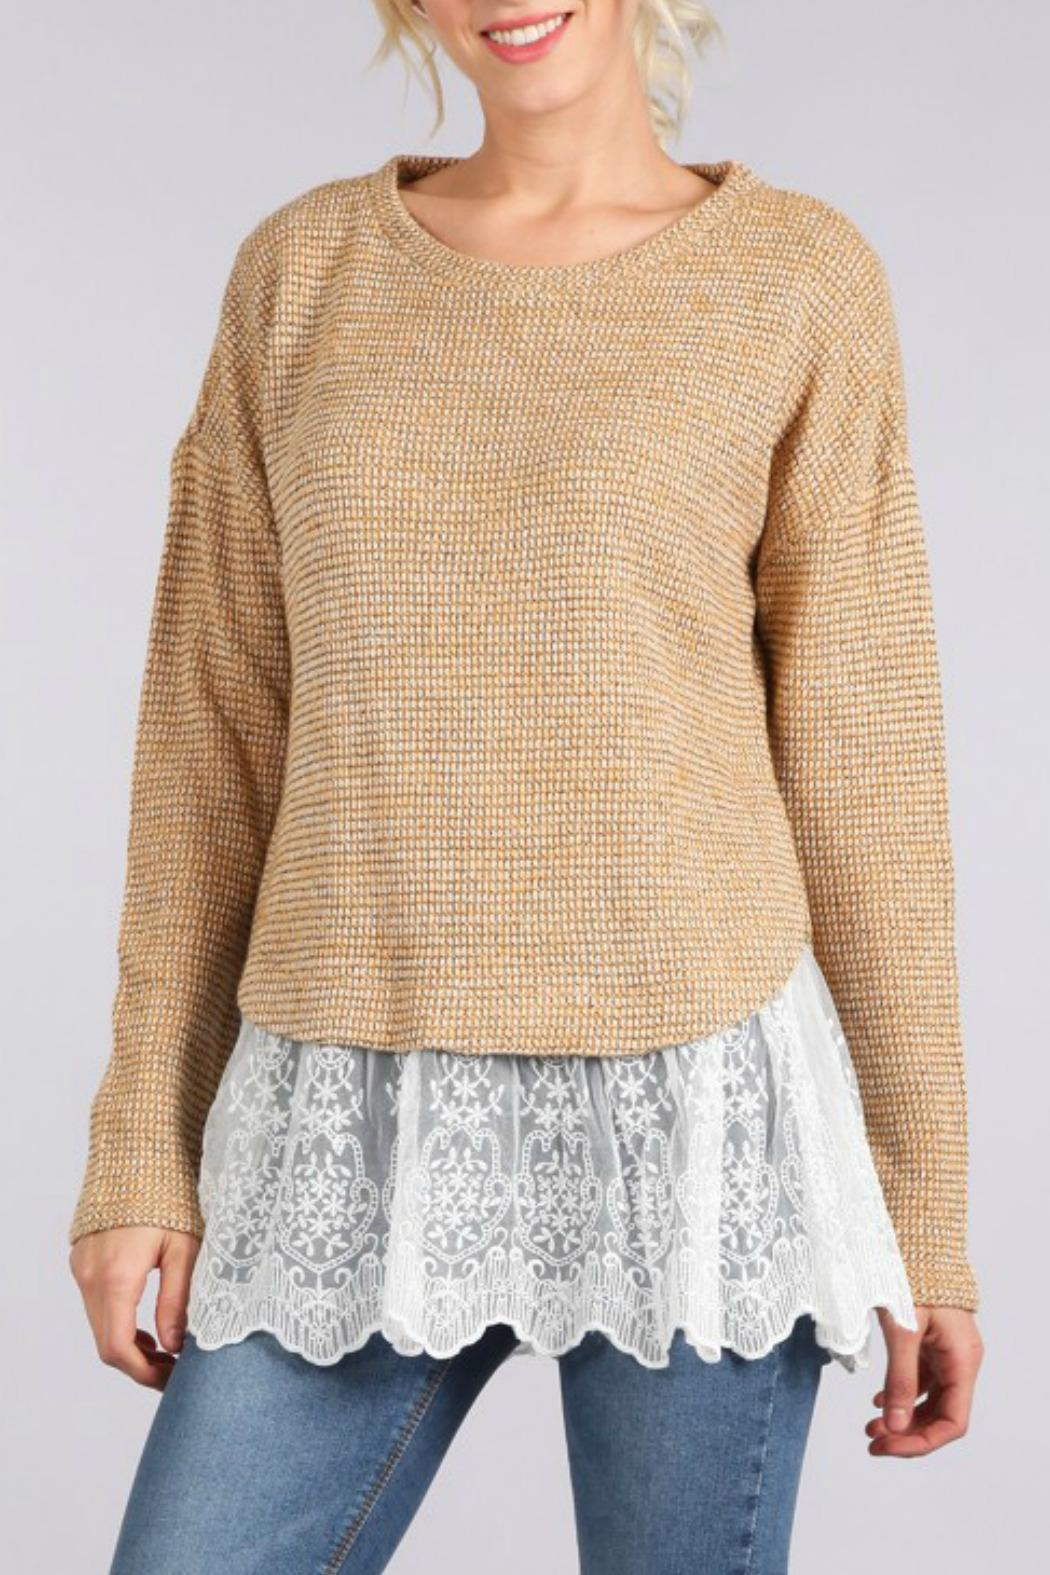 Blu Pepper Lace Hem Sweater from Illinois by The Colette ...